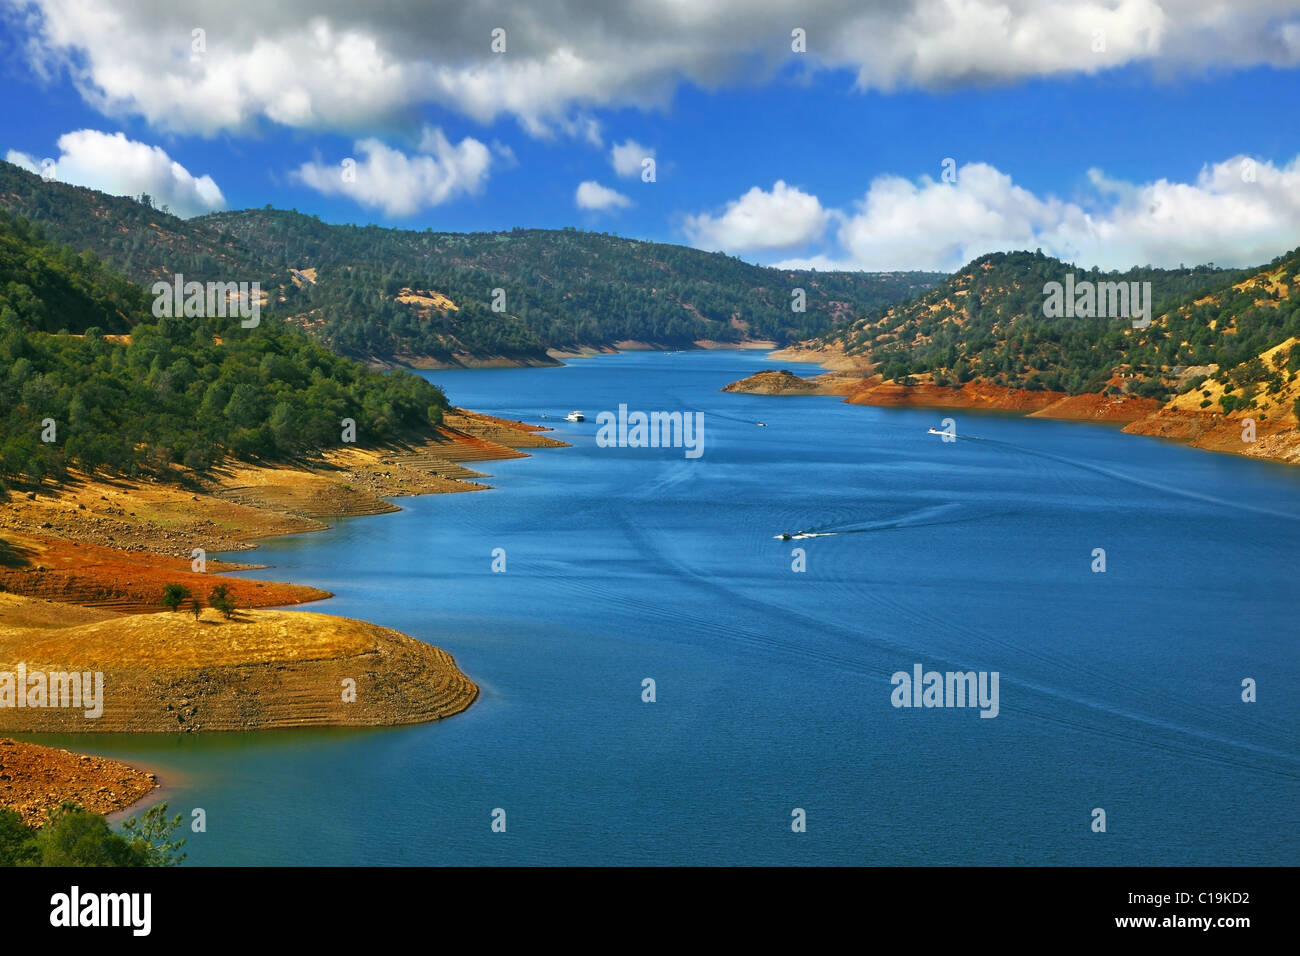 Bright dark blue water and the charming rounded off sandy coast of the river Mersed - Stock Image